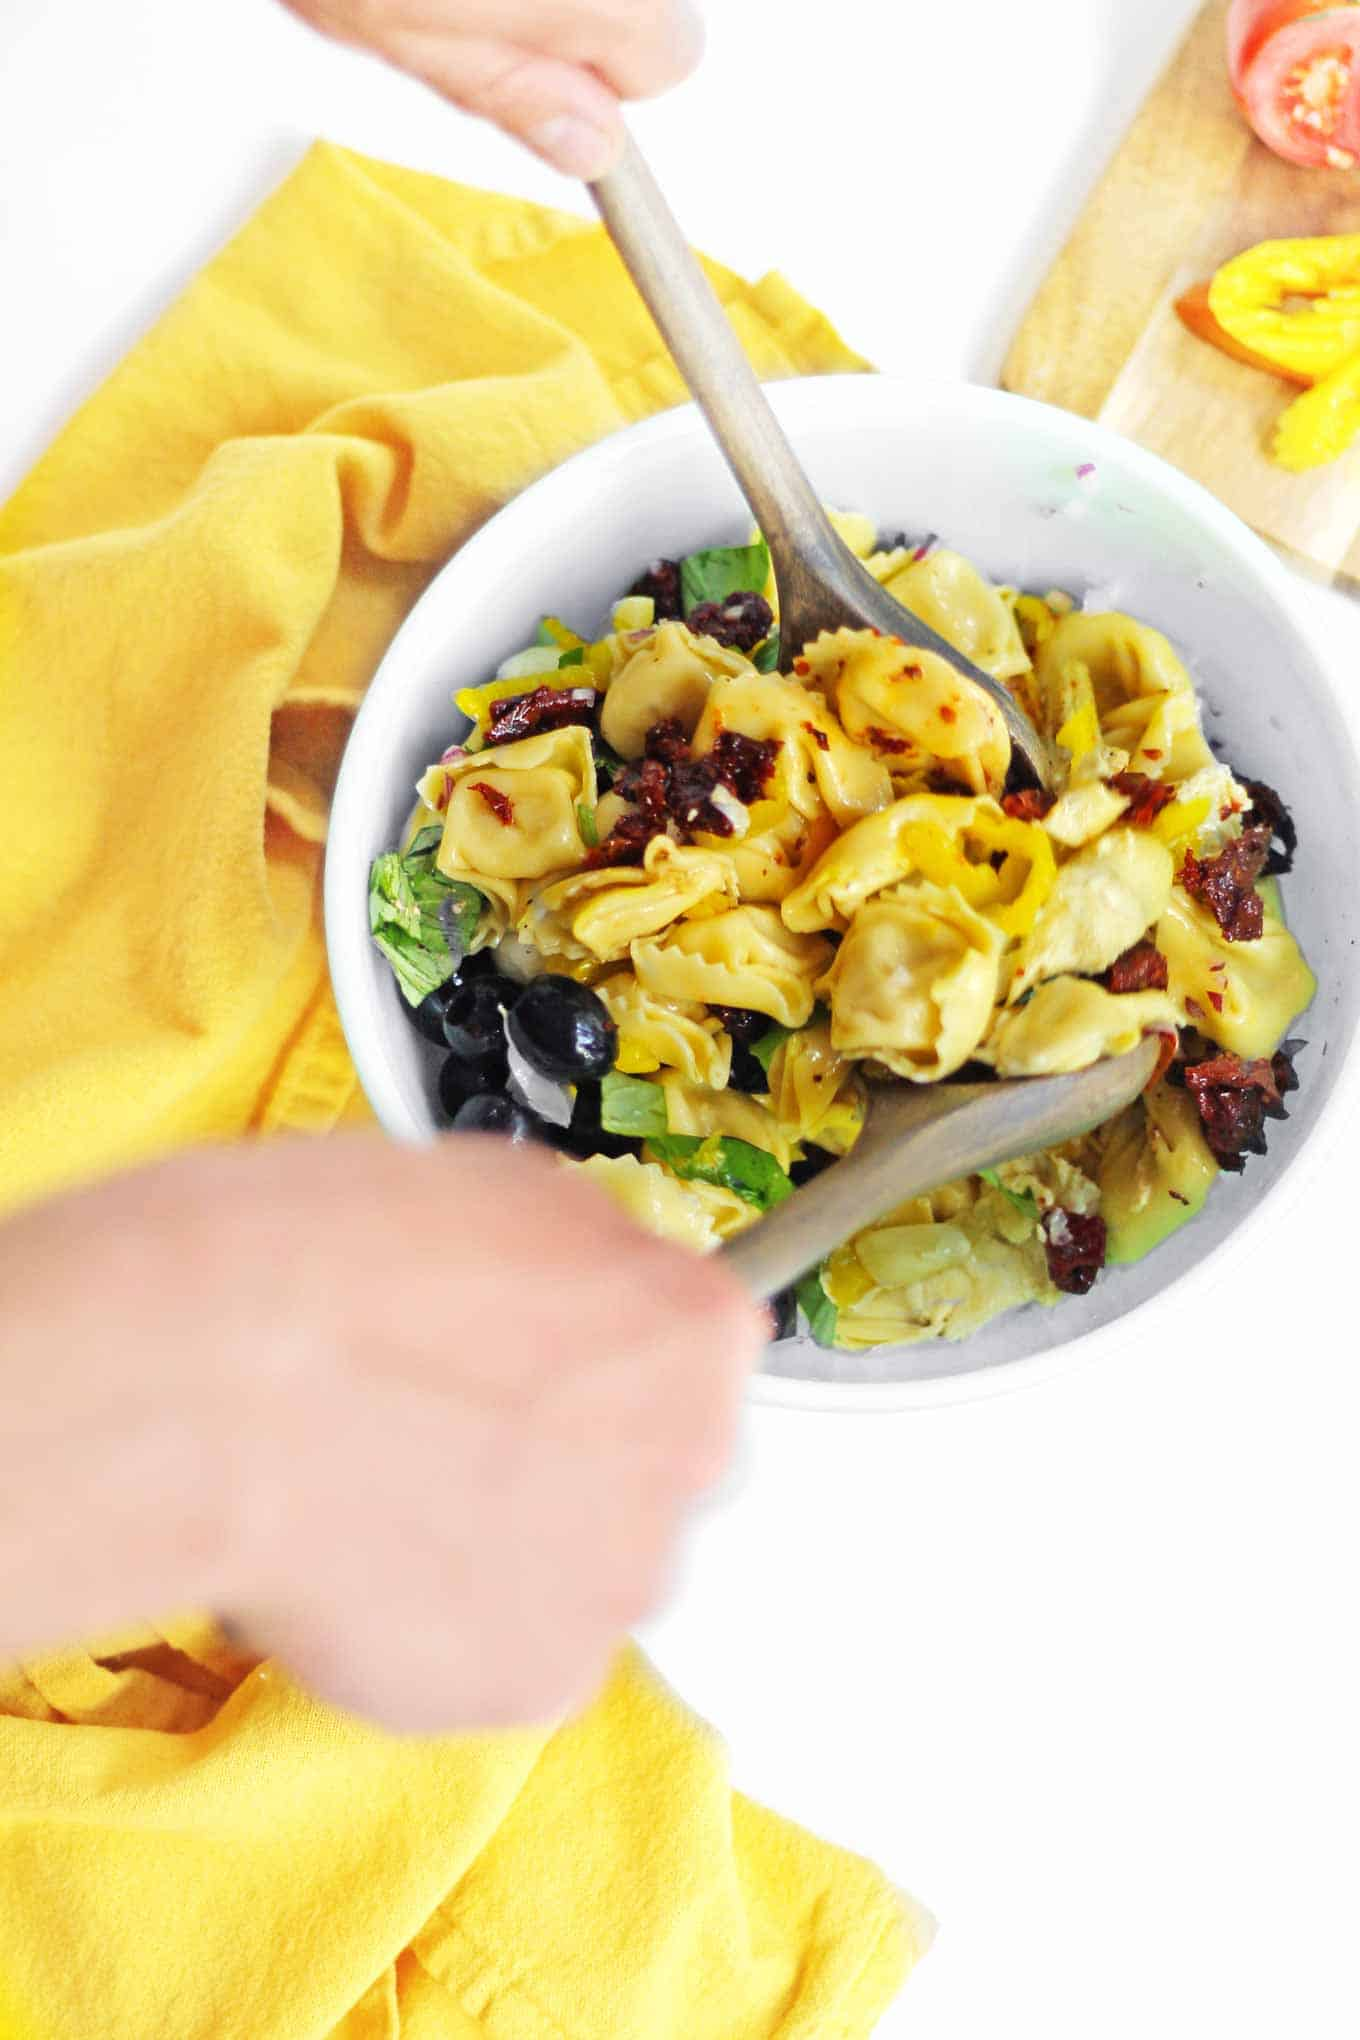 tossing a cheese tortellini pasta salad